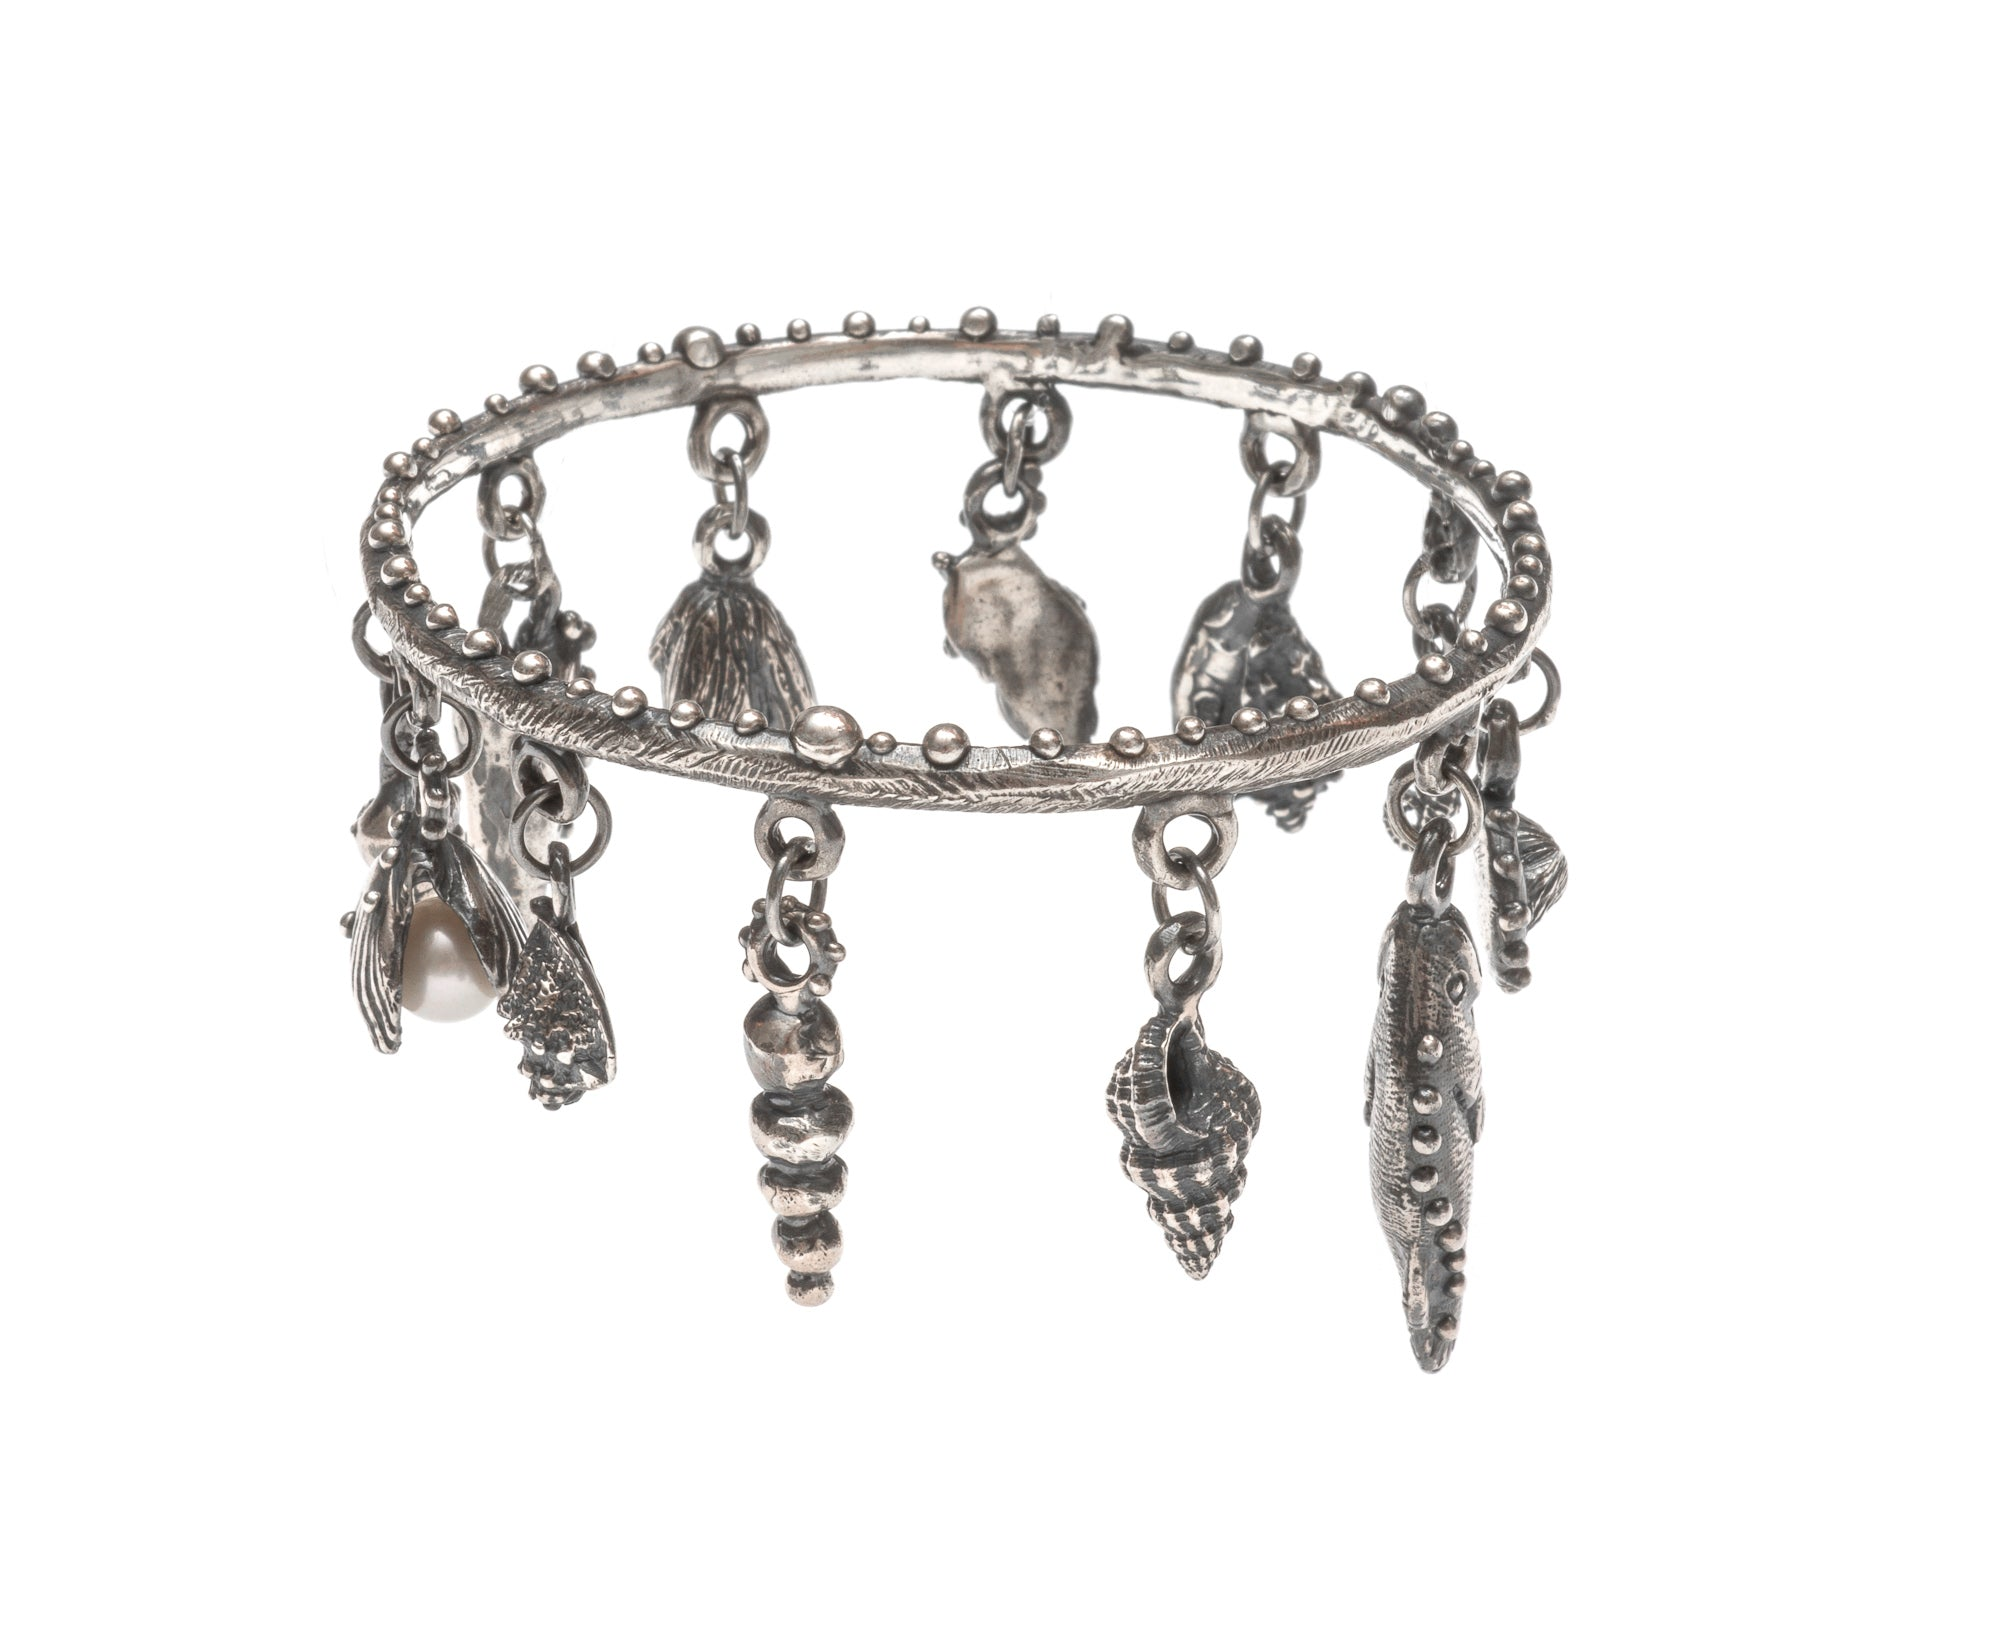 From the Sea ~ Charm bangle